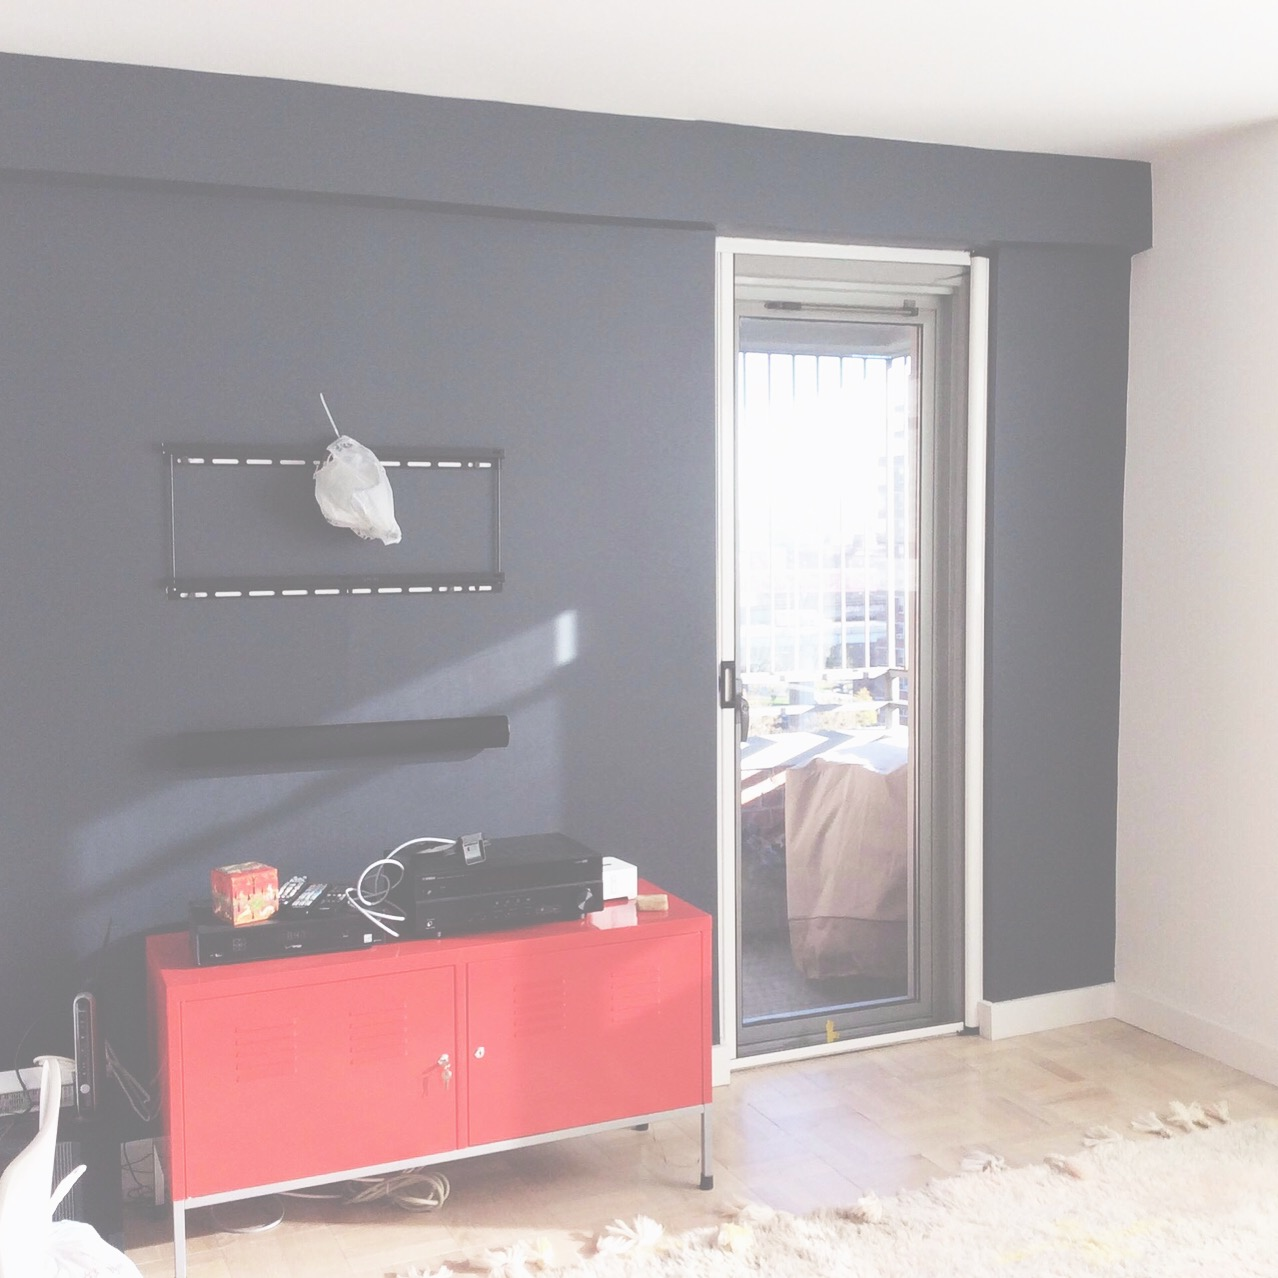 Client living room in progress   #repaint   #interiors   #inprogress